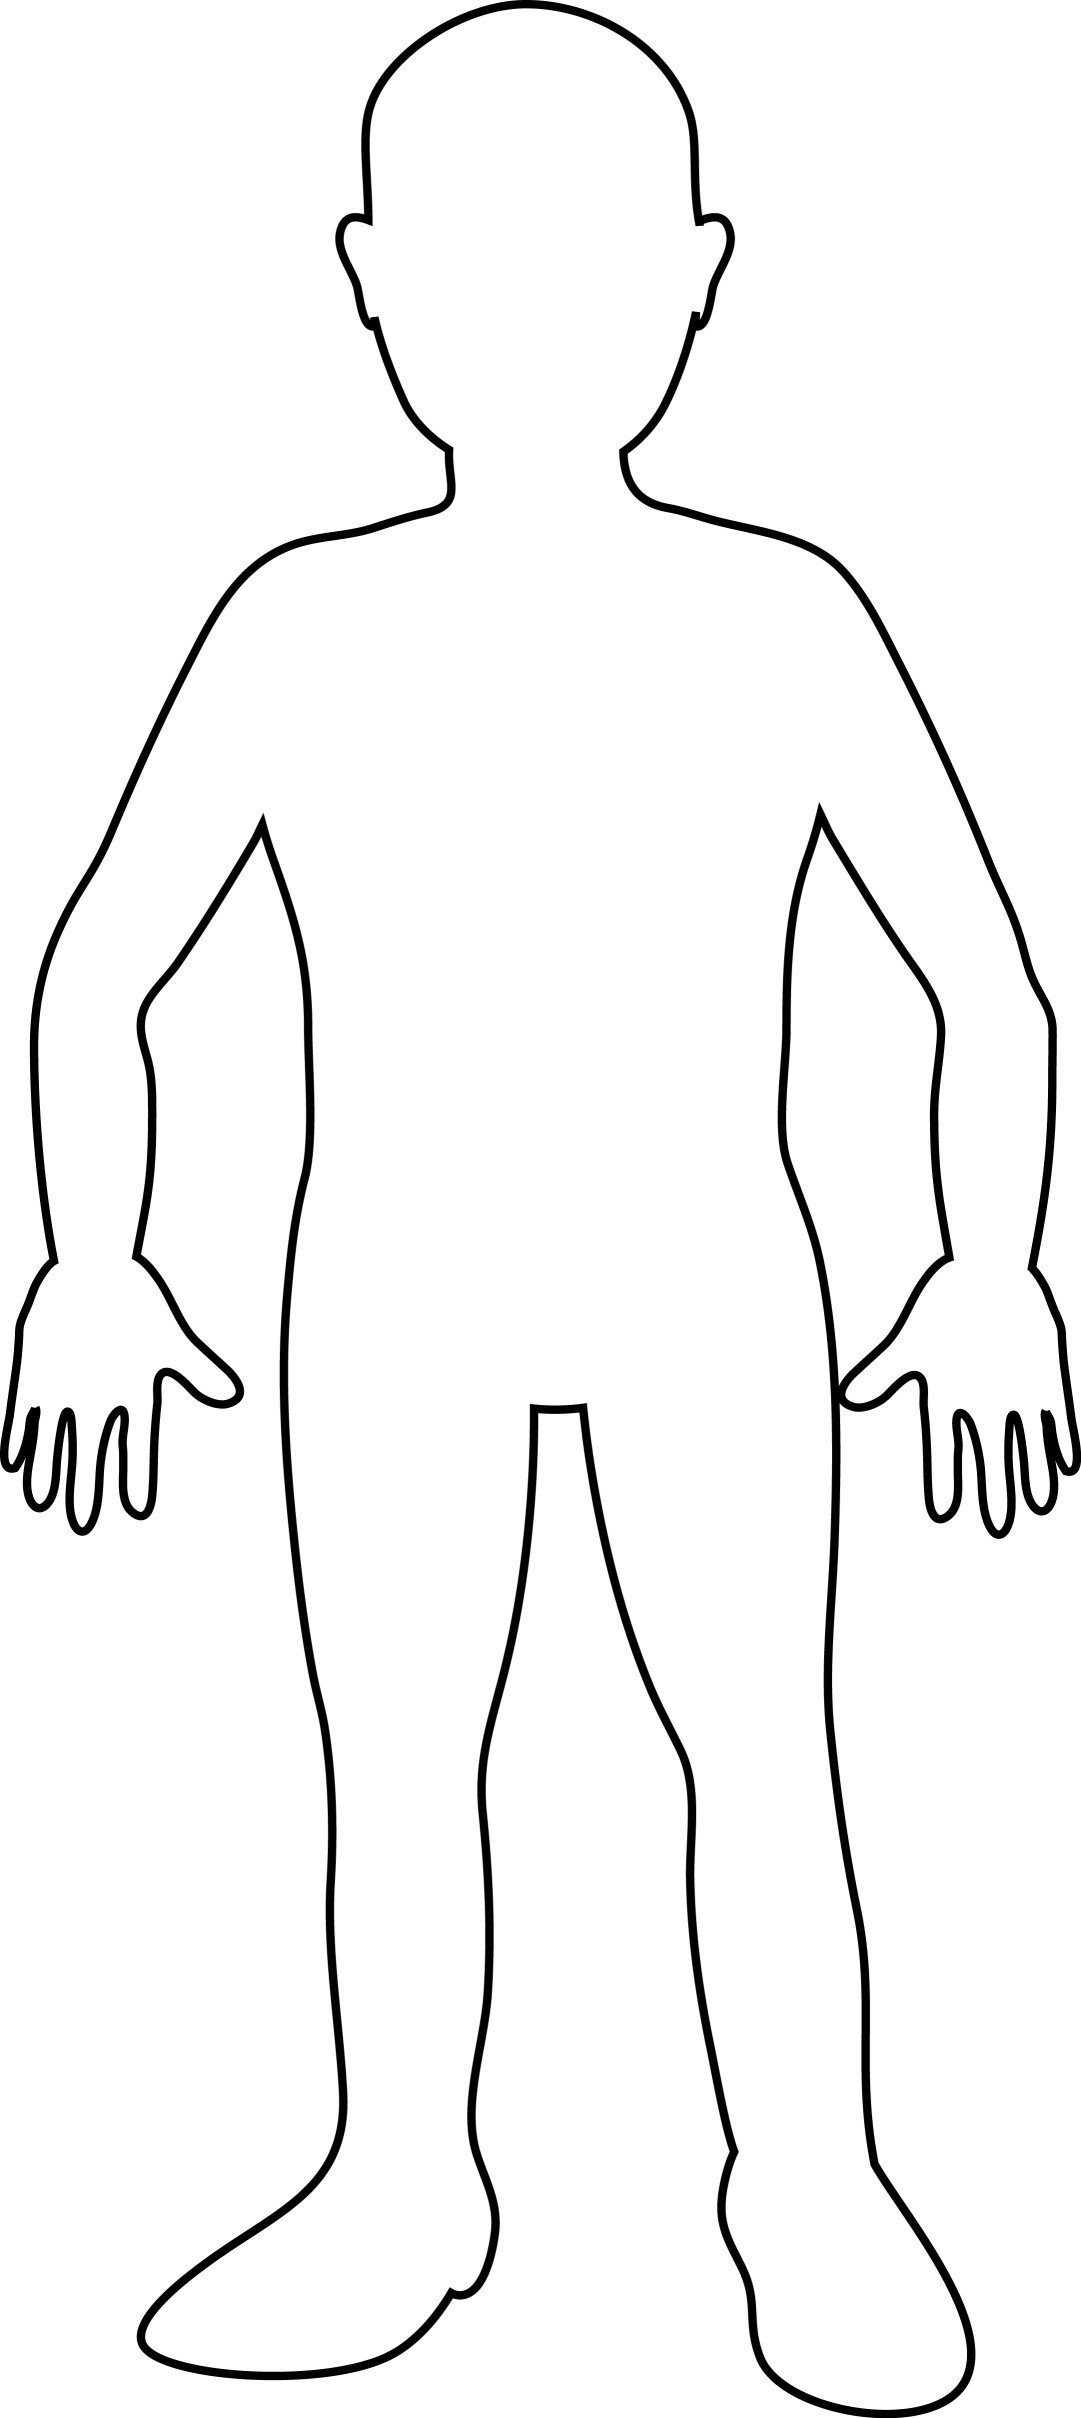 Outline Of A Human Free Human Outline Template Download Free Clip Art Free